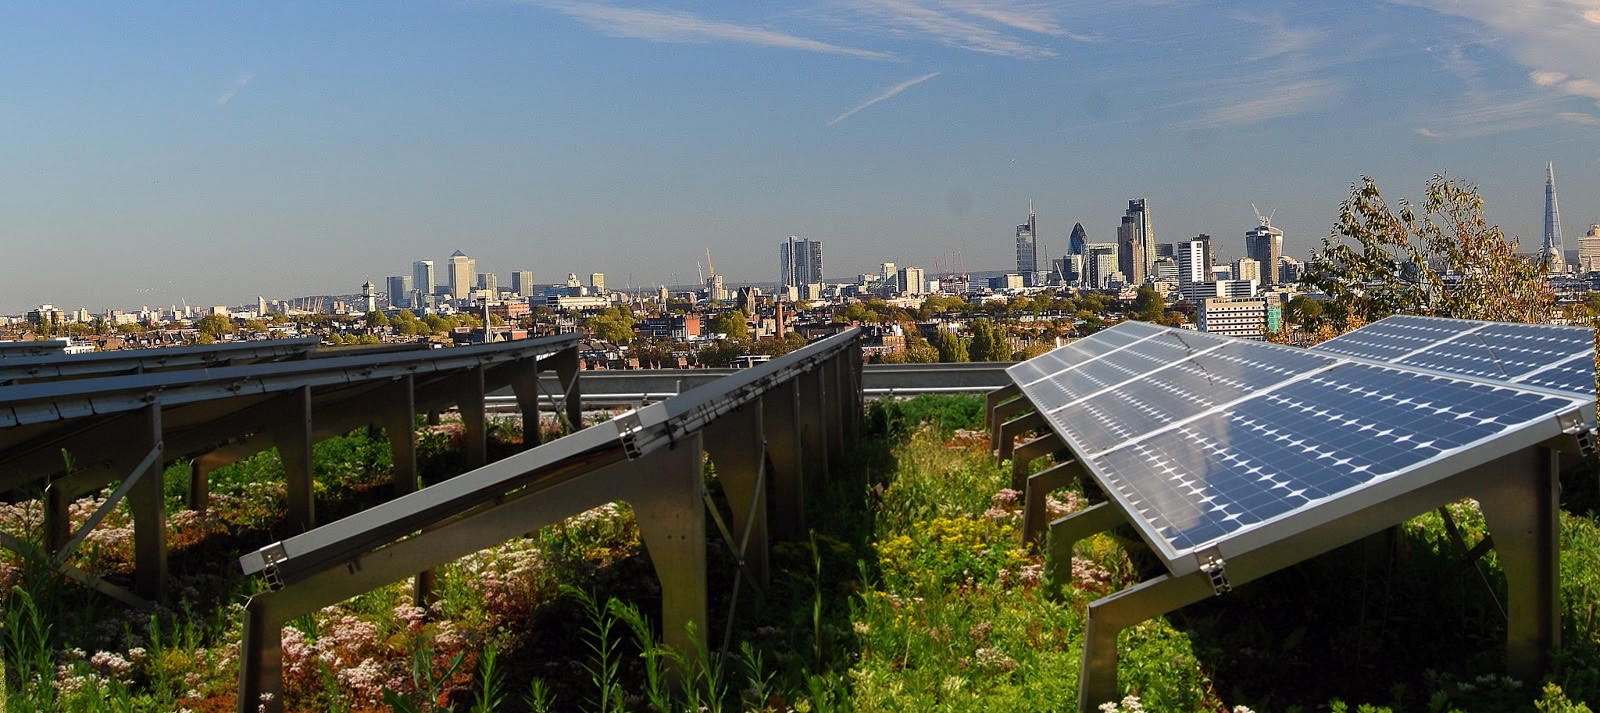 Green Roofs And Solar Power Should Be Part Of Our Future